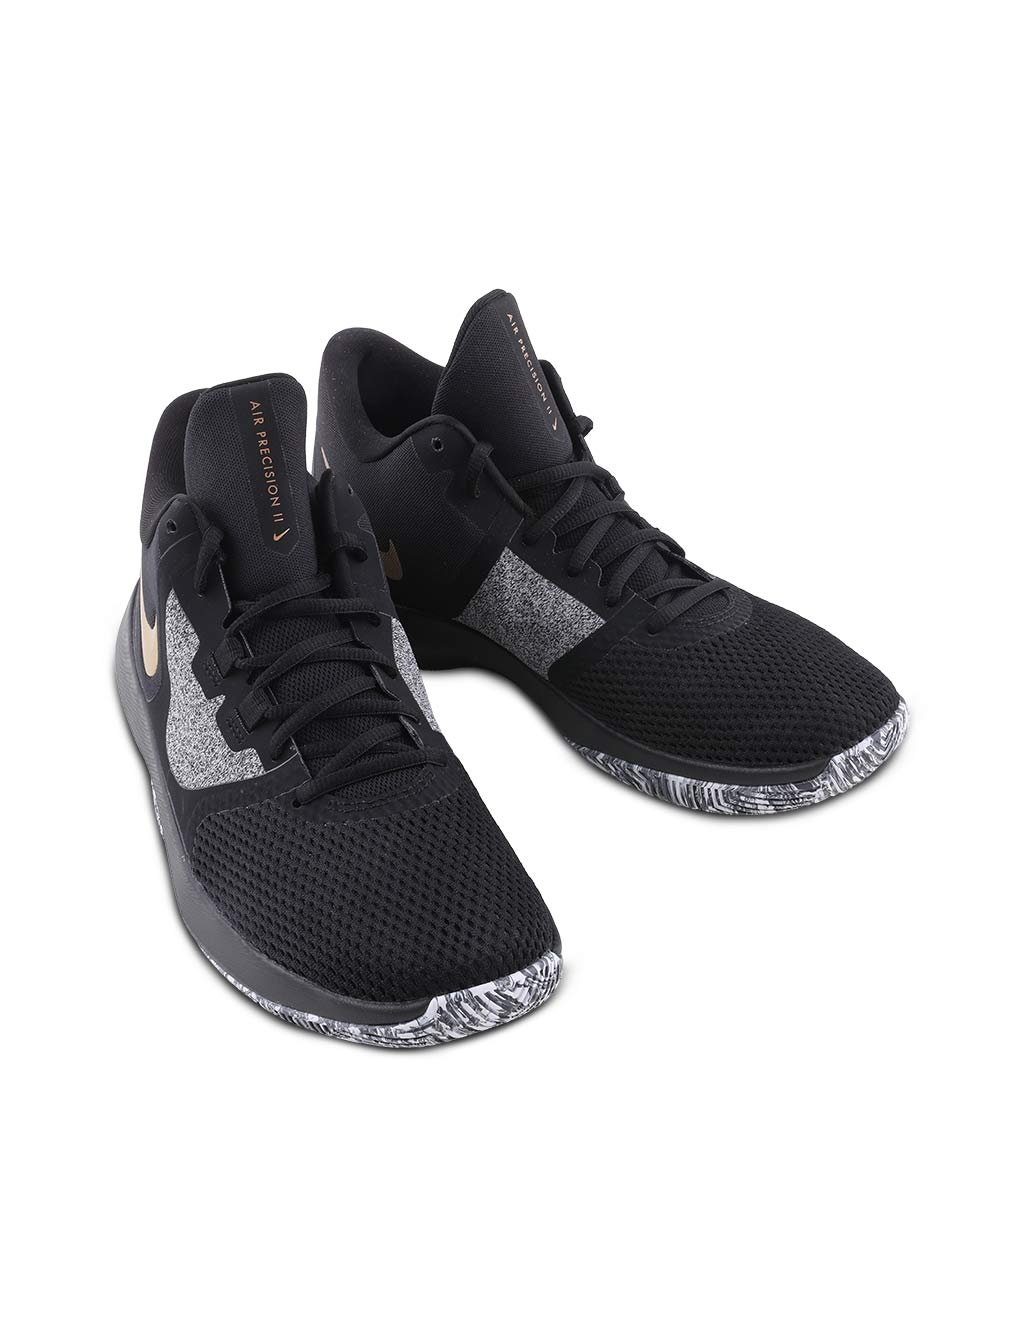 size 40 a986a 8b243 Nike Air Precision 2 Men s Black Sports Shoe - Buy Online at Best Prices    Ezmall.com